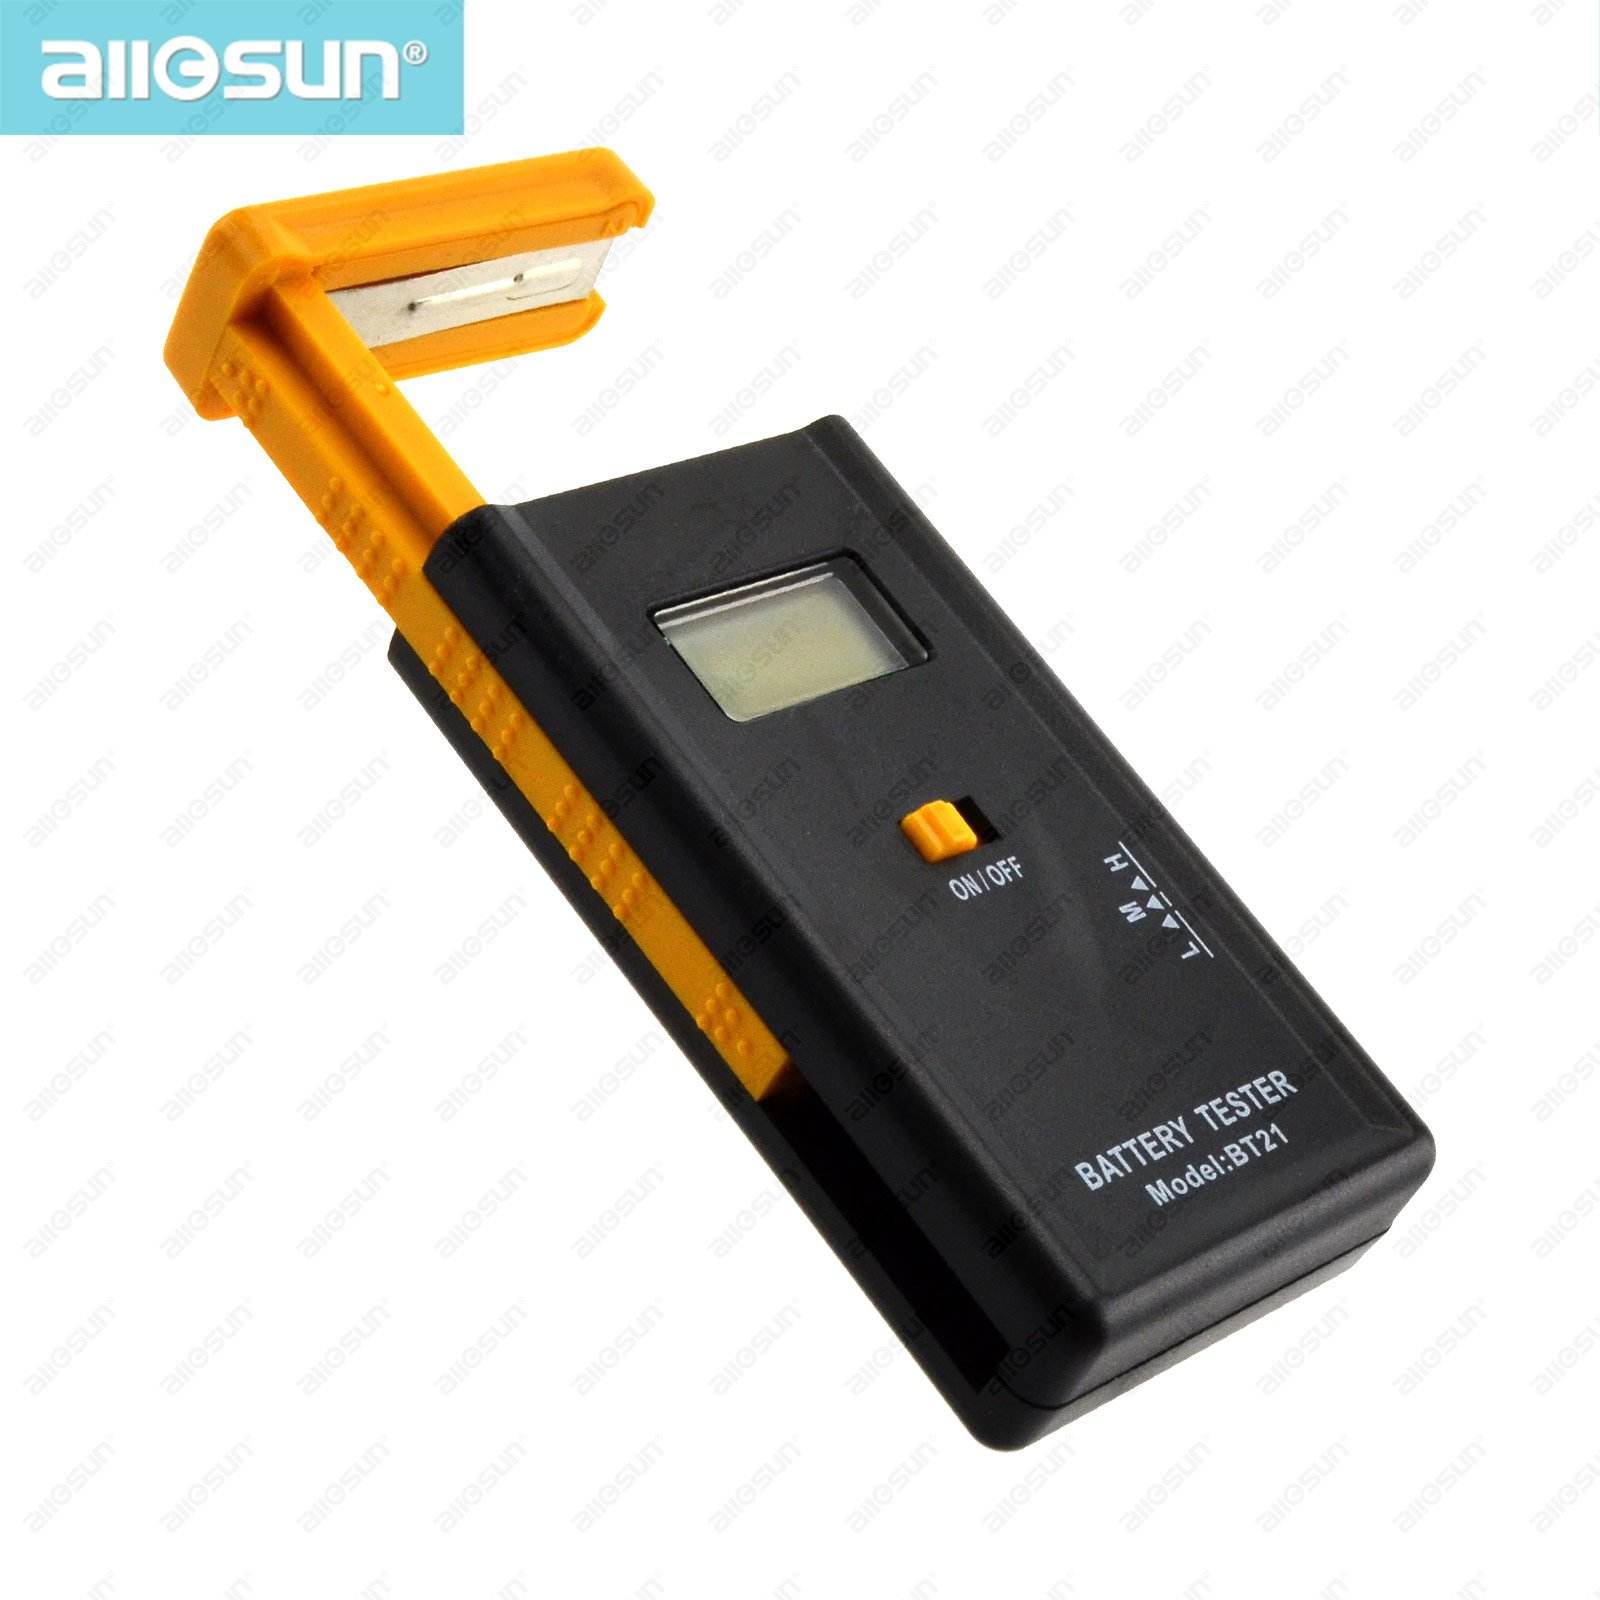 Digital Battery Analyzer : All sun bt digital battery tester lcd display about